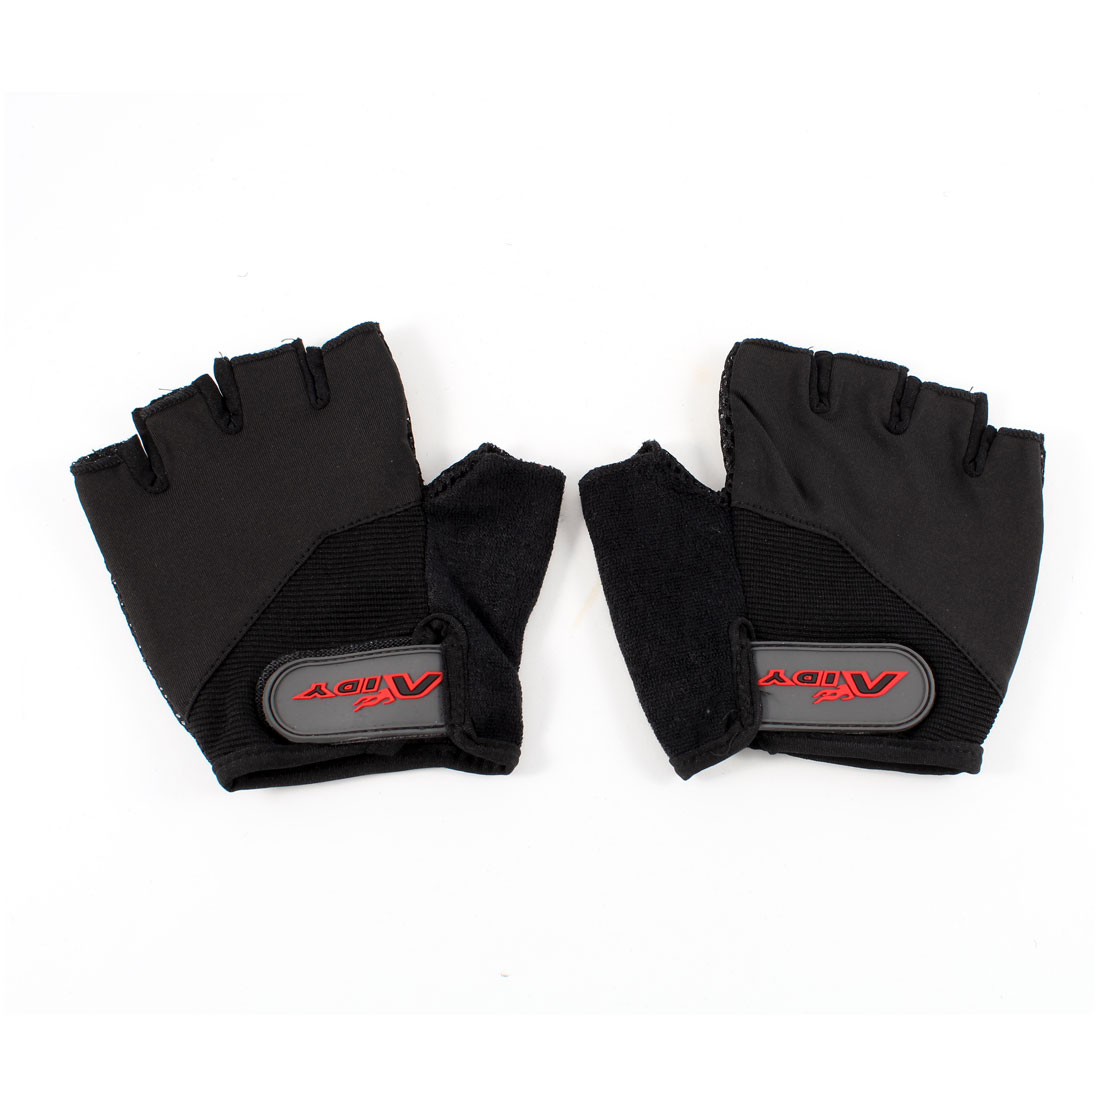 Pair Kids Outdoors Black Fingerless Skidproof Racing Bicyle Gloves